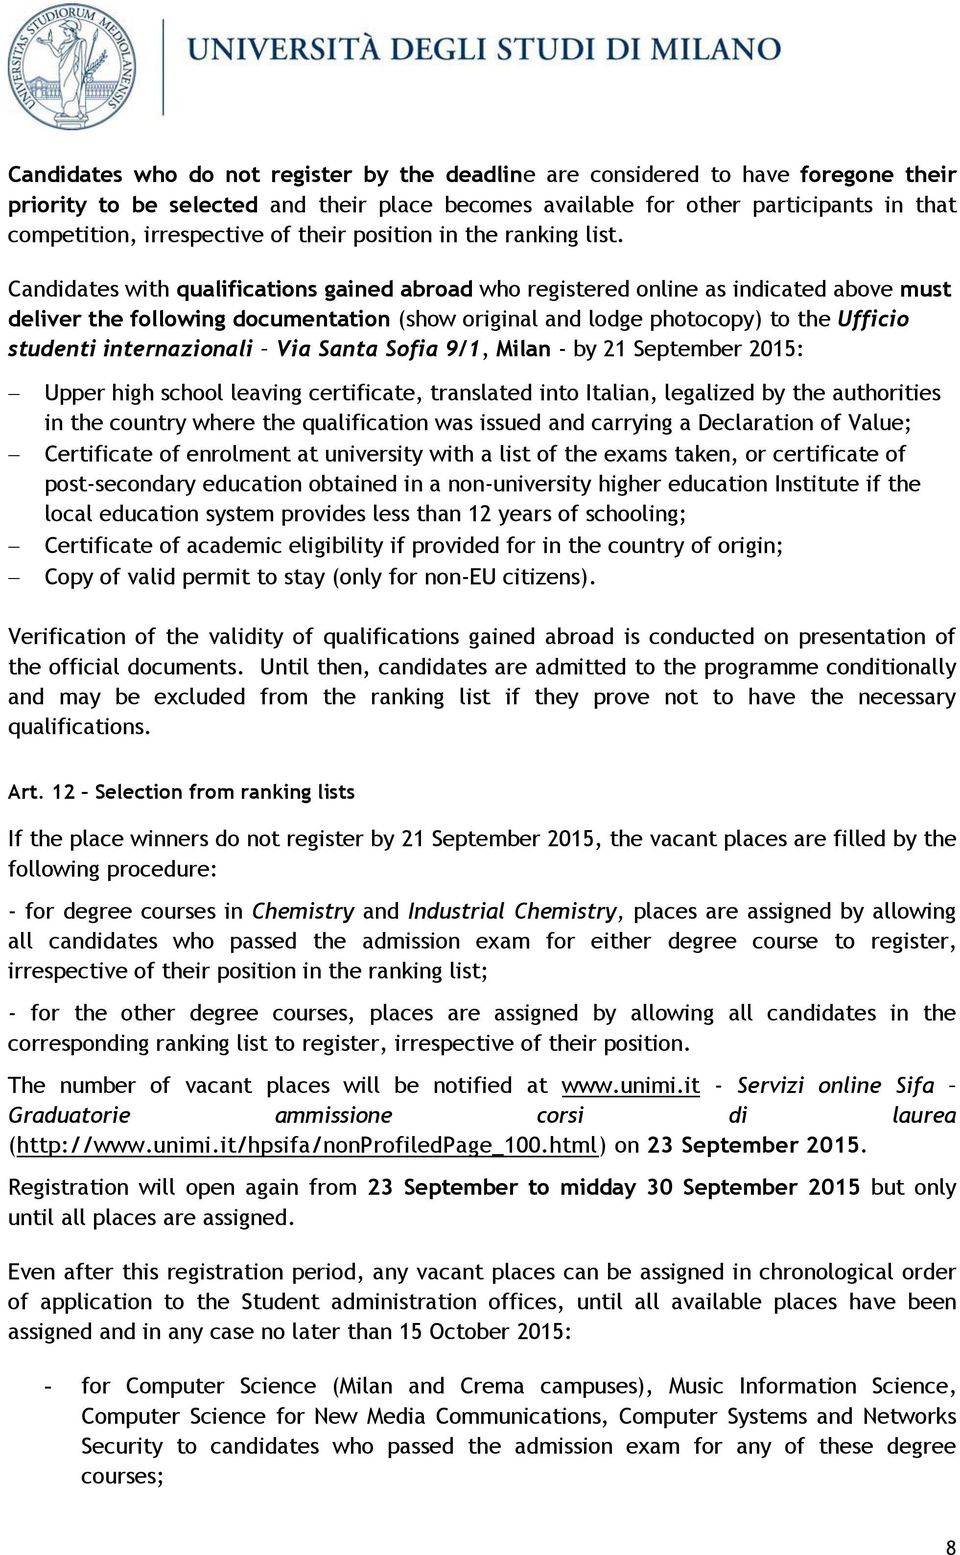 Candidates with qualifications gained abroad who registered online as indicated above must deliver the following documentation (show original and lodge photocopy) to the Ufficio studenti